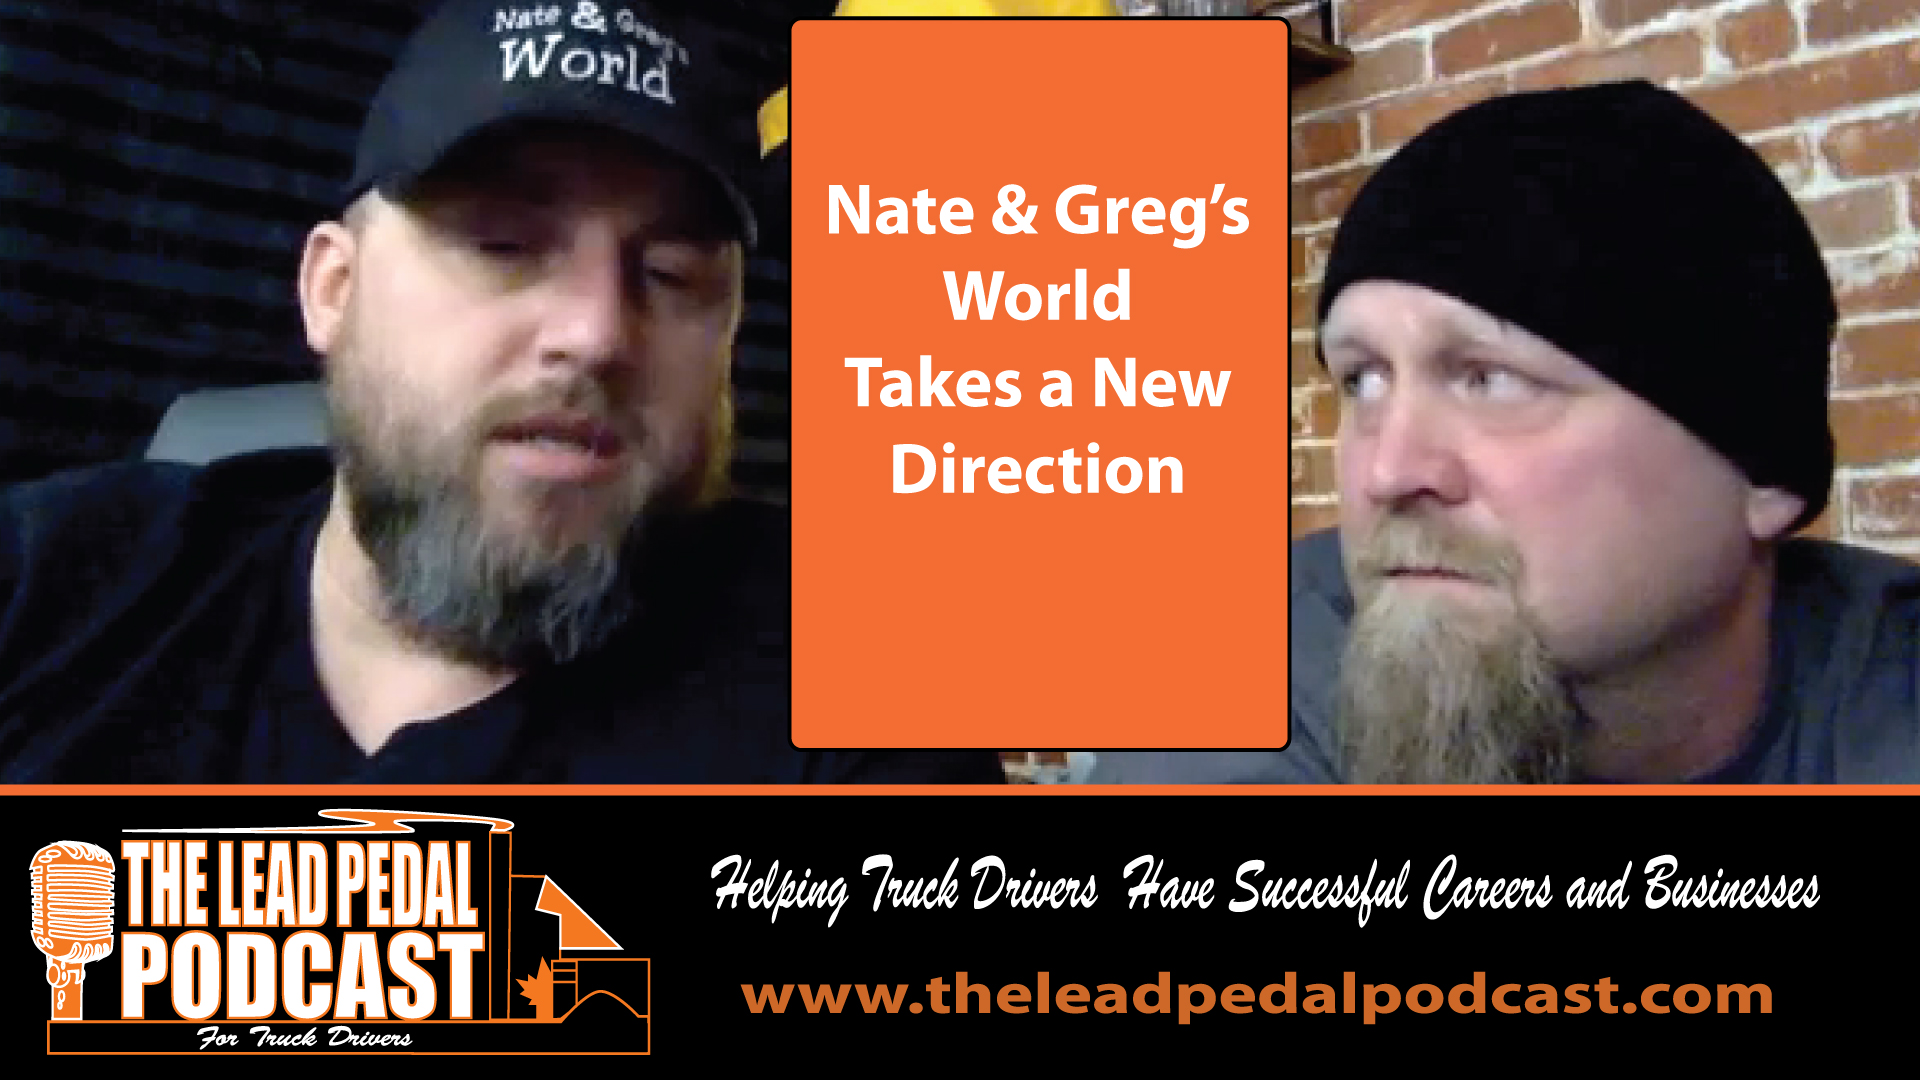 LP605 Nate and Greg's World Talks About New Approach to Podcast